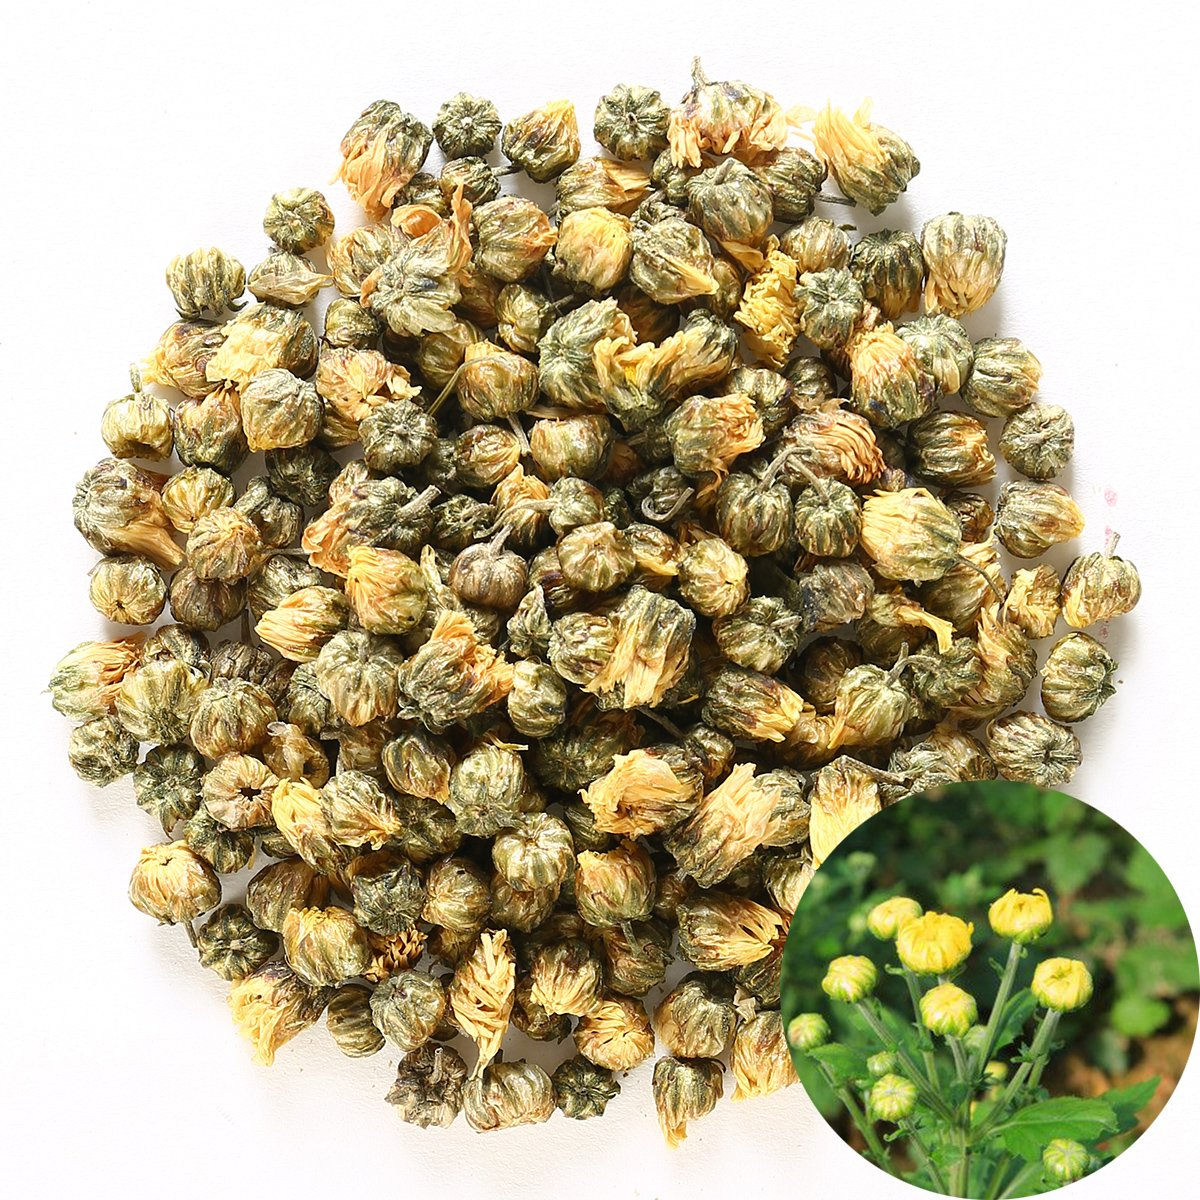 TooGet Traditional Health Herbs, Chrysanthemum Buds, Tai Ju, Natural Premium Golden Fetal Chrysanthemum Flower Floral Dried Herbal Wholesale, Culinary Food Grade - 4 OZ